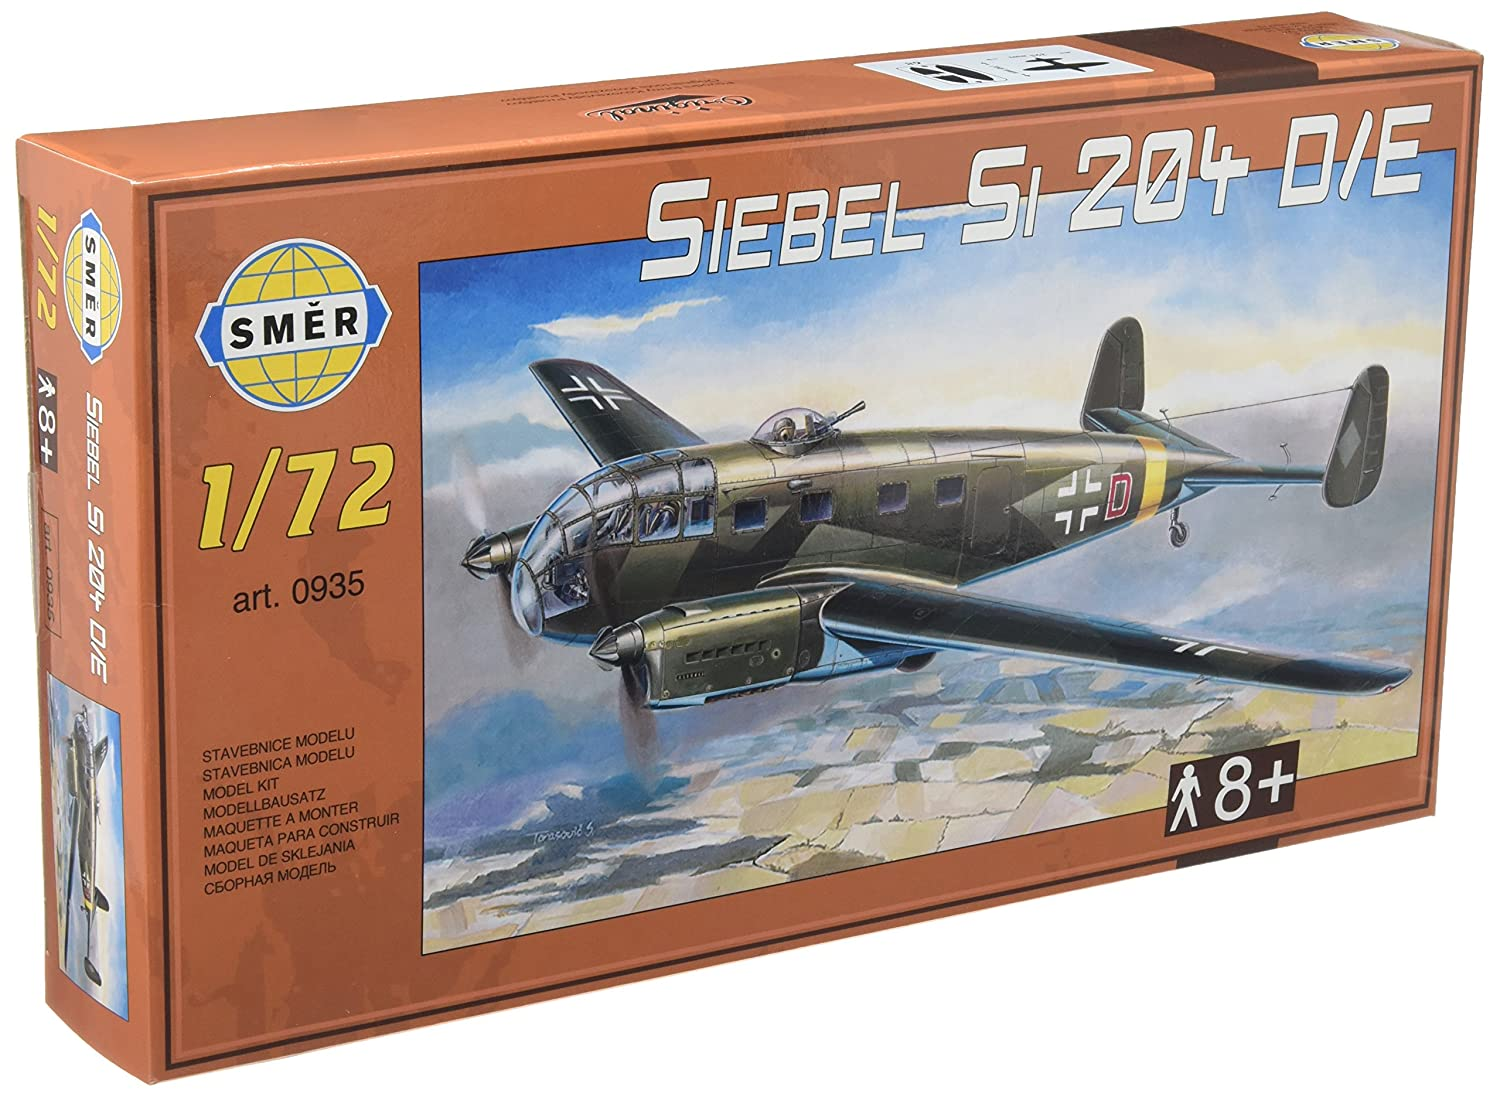 Amazon.com: Este revisión 1/72 Alemania Siebel si-si204d/E ...